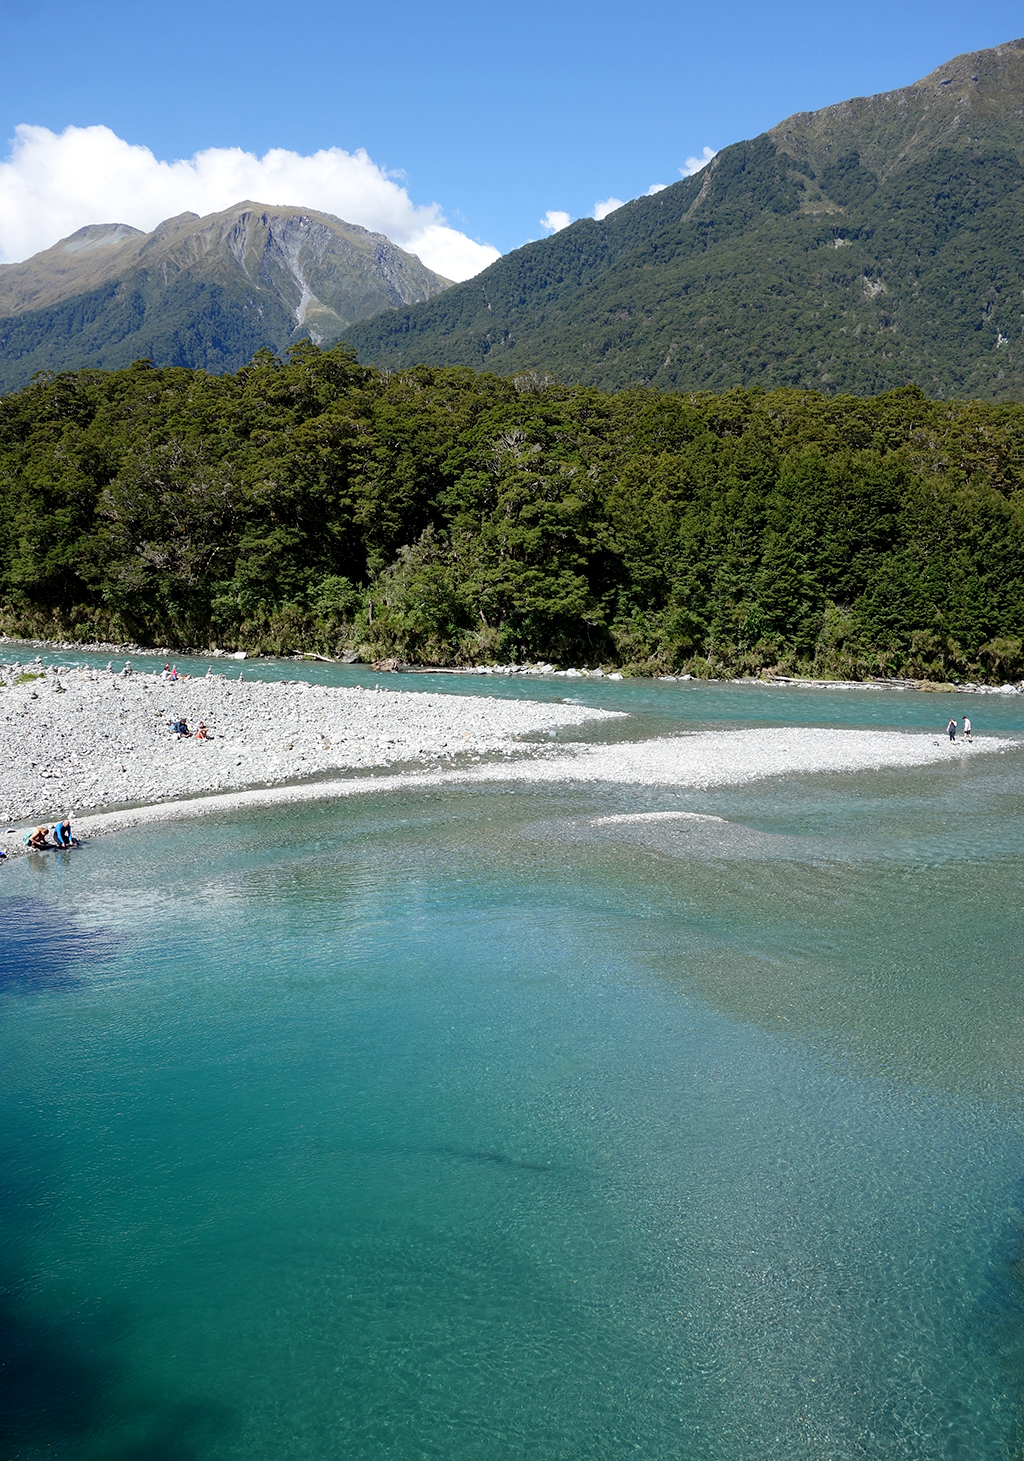 Blue water river in New Zealand